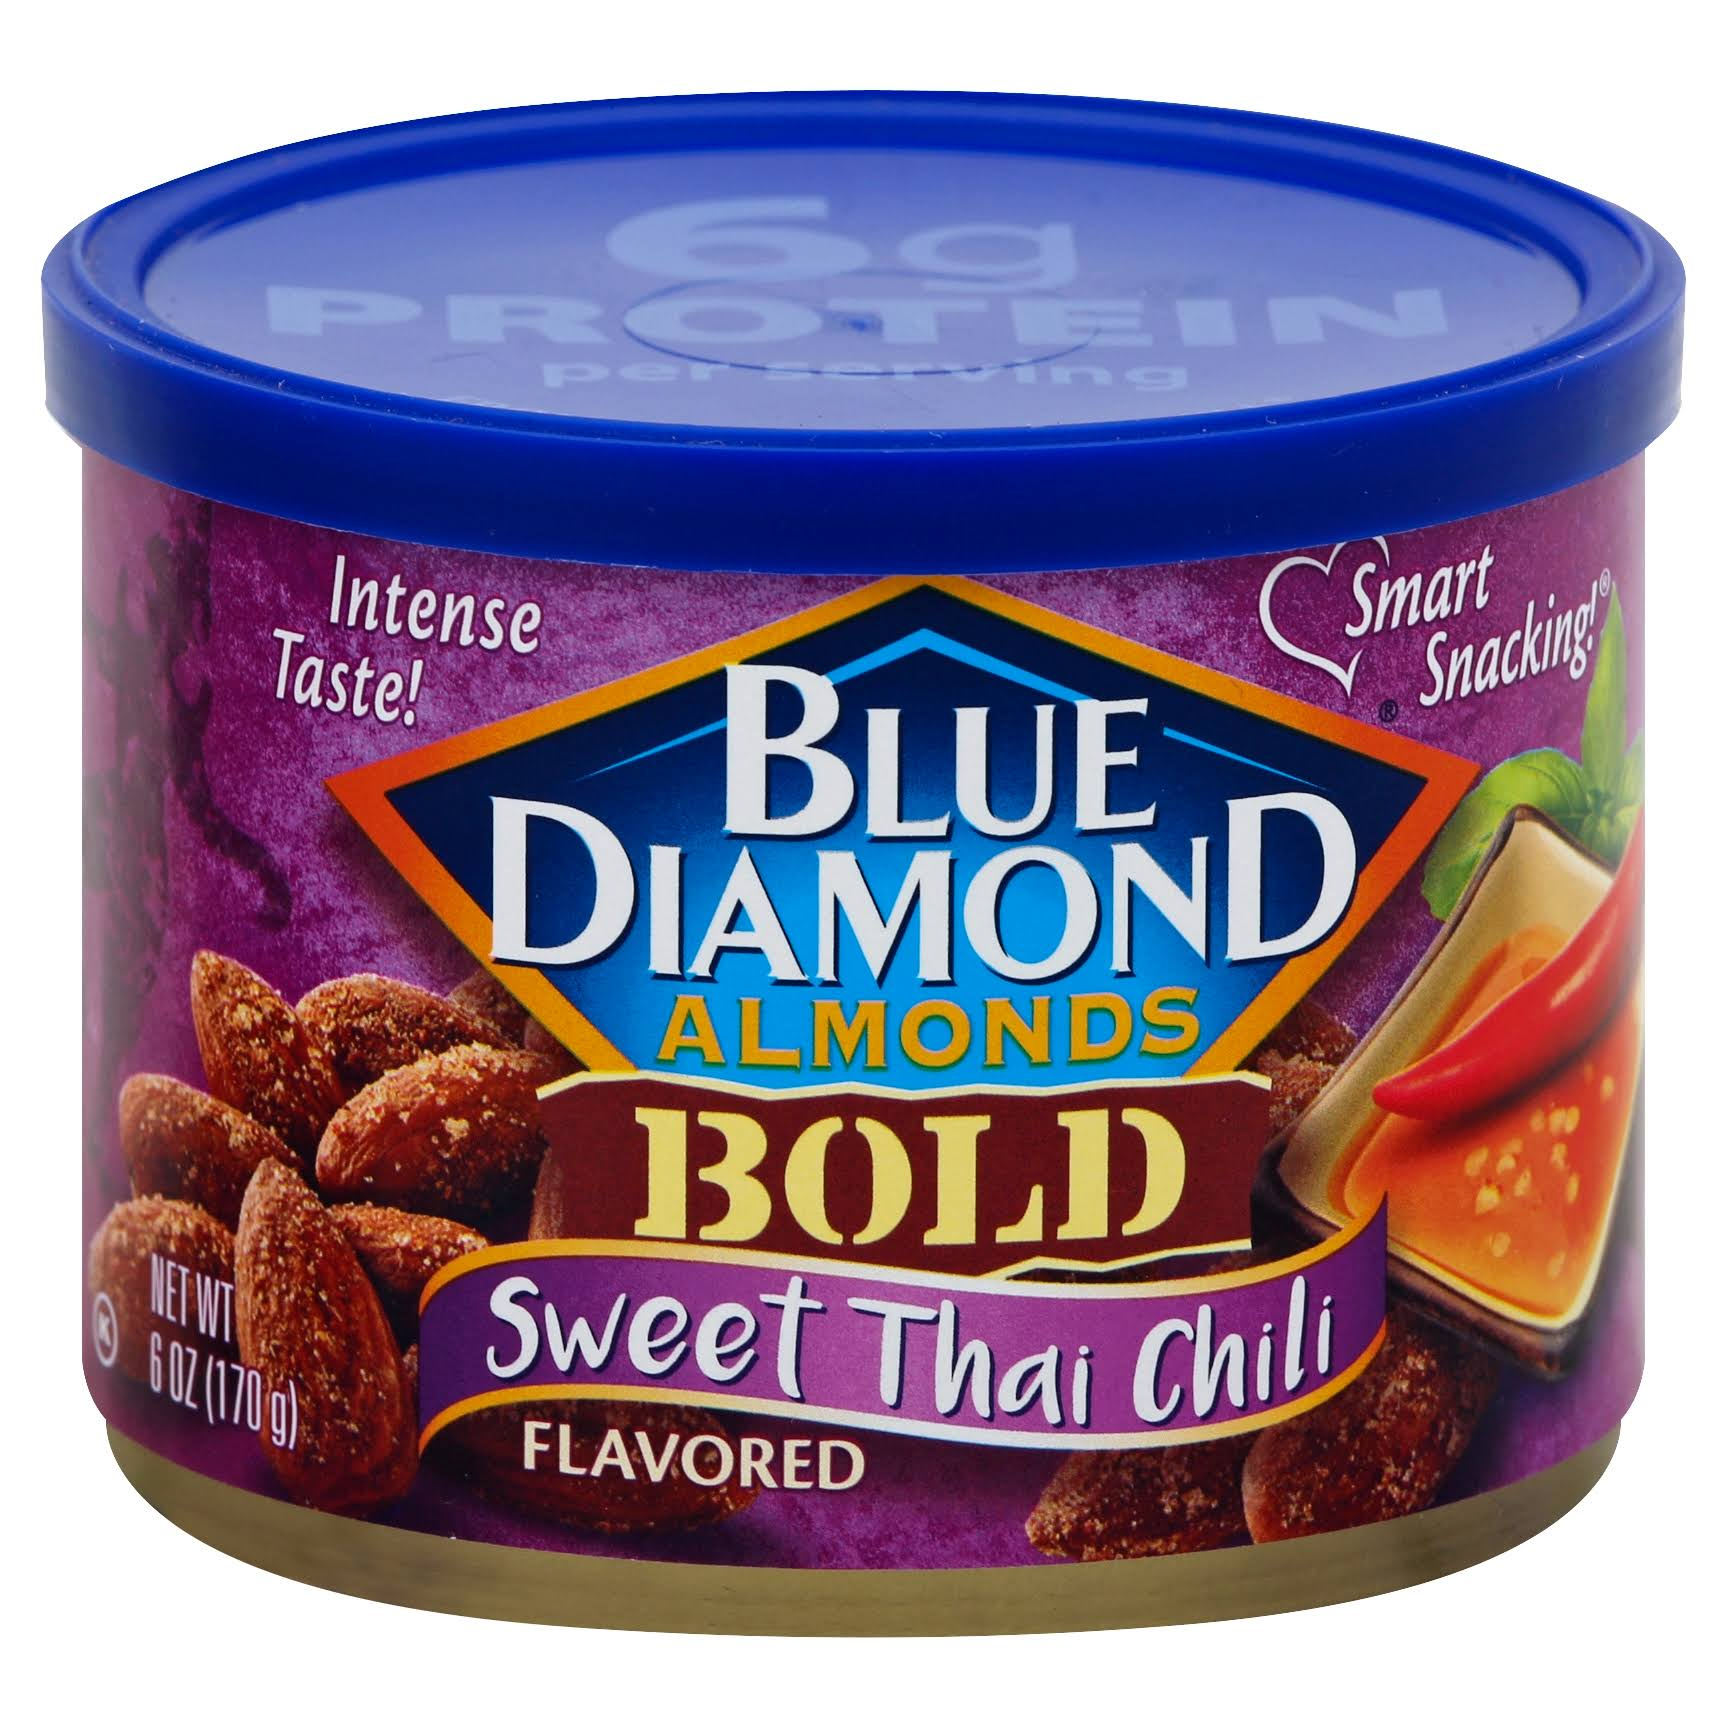 Blue Diamond Almonds Bold - Sweet Thai Chili, 170g